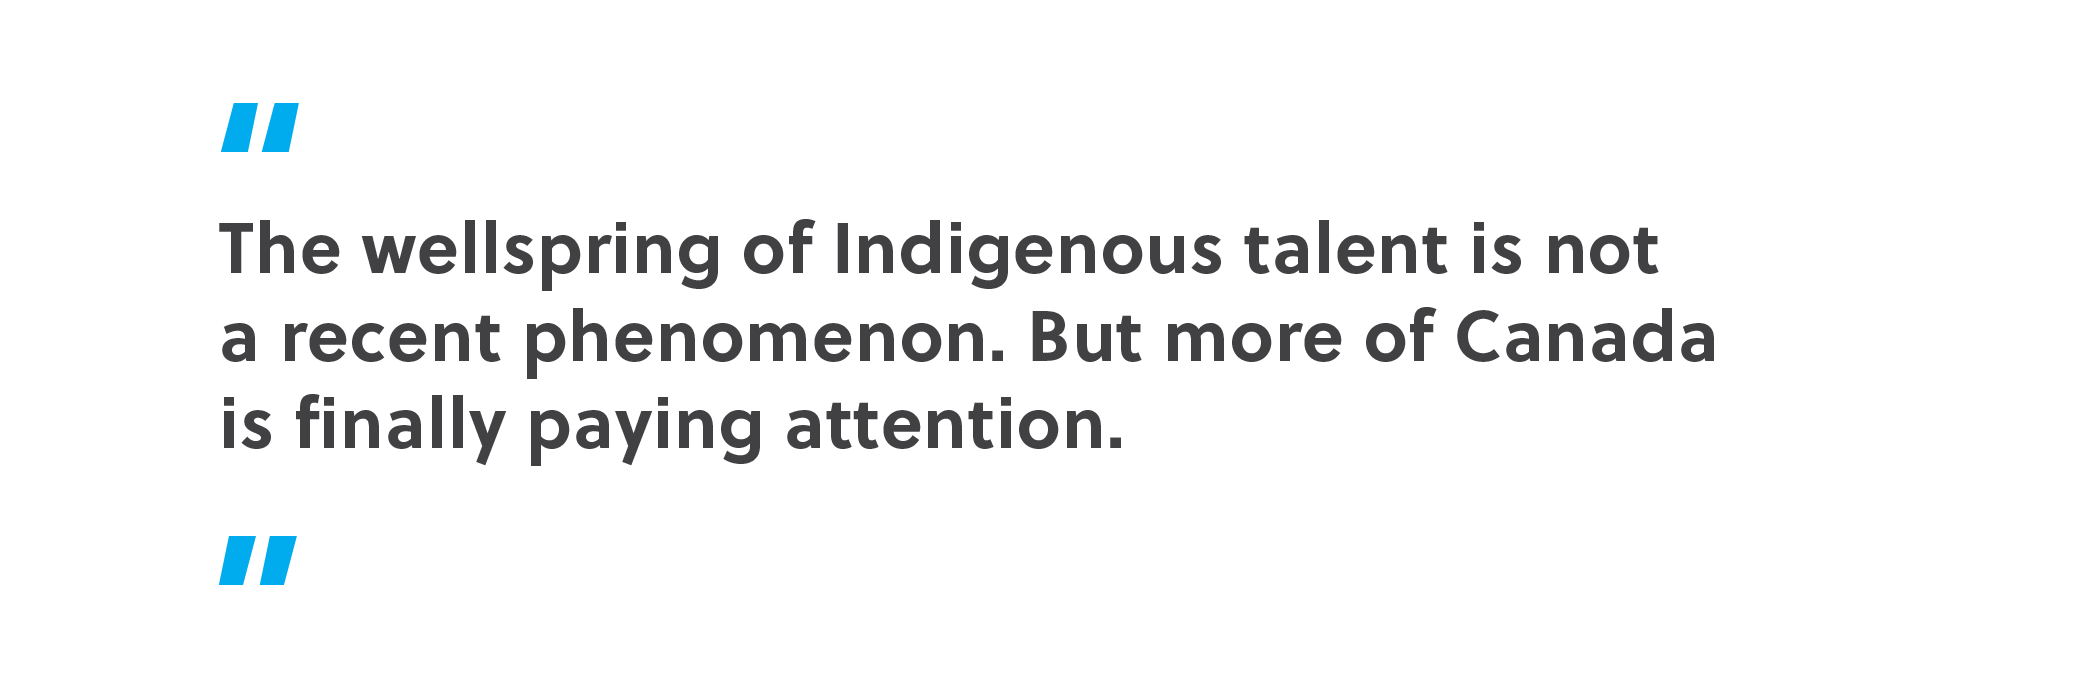 The wellspring of Indigenous talent is not a recent phenomenon. But more of Canada is finally paying attention.